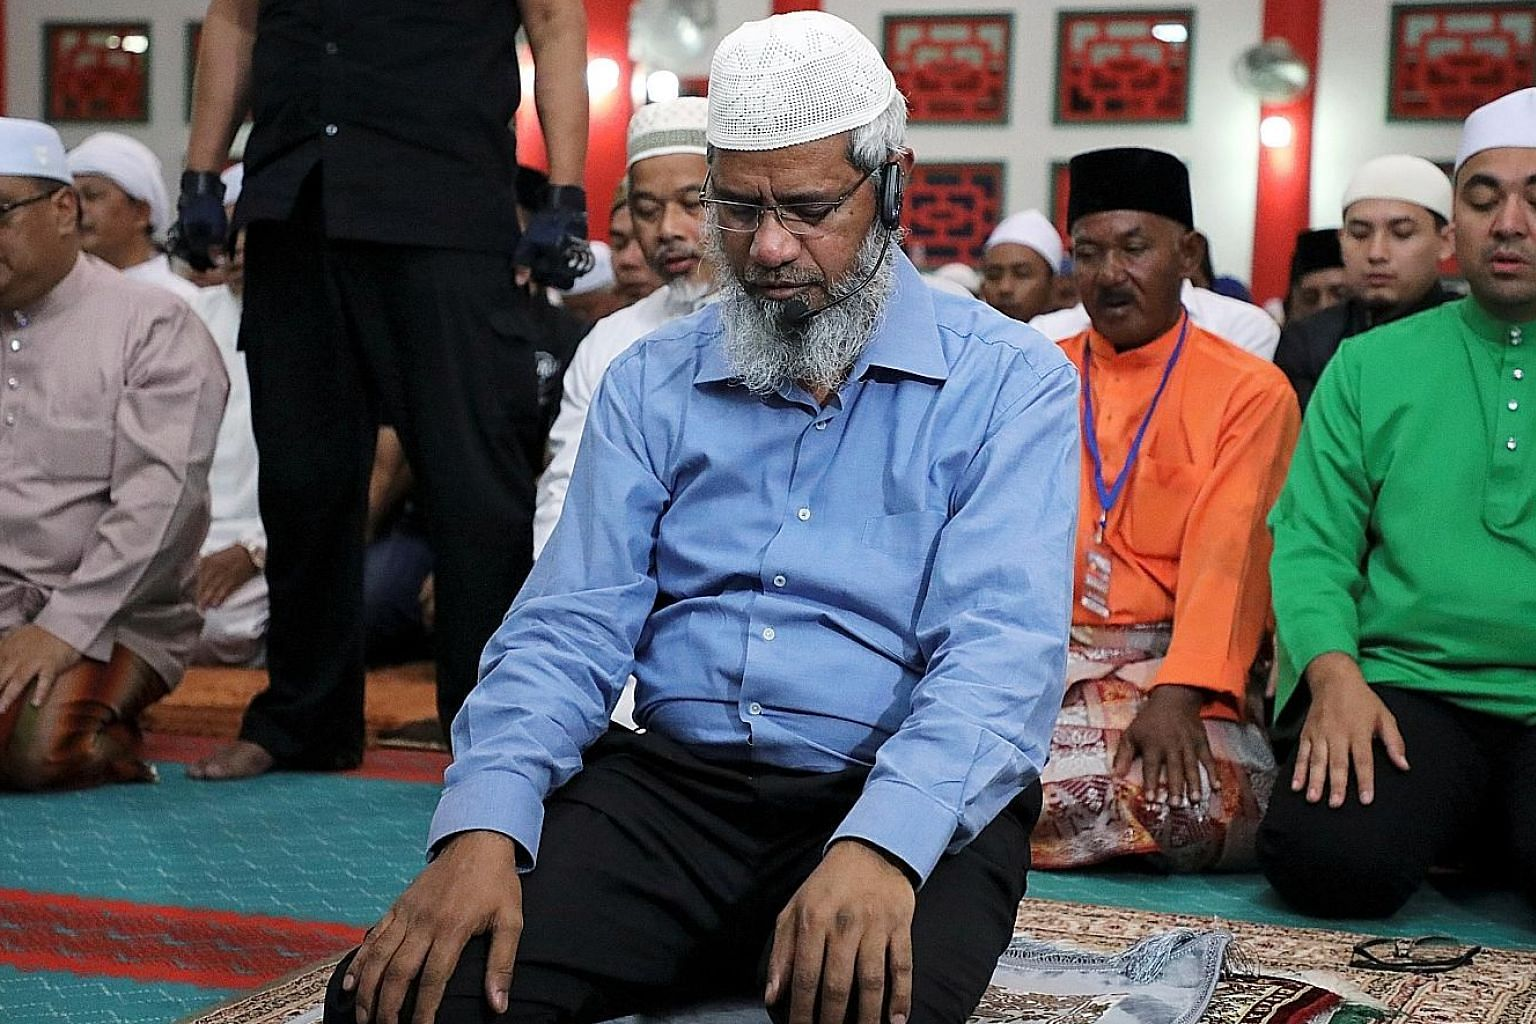 Indian Islamic preacher Zakir Naik praying at a mosque in Melaka, Malaysia, on Sept 7. The writer argues that though Dr Zakir is allowed to remain in Malaysia as he has political value, it is time for the government to look after the interests of Mal